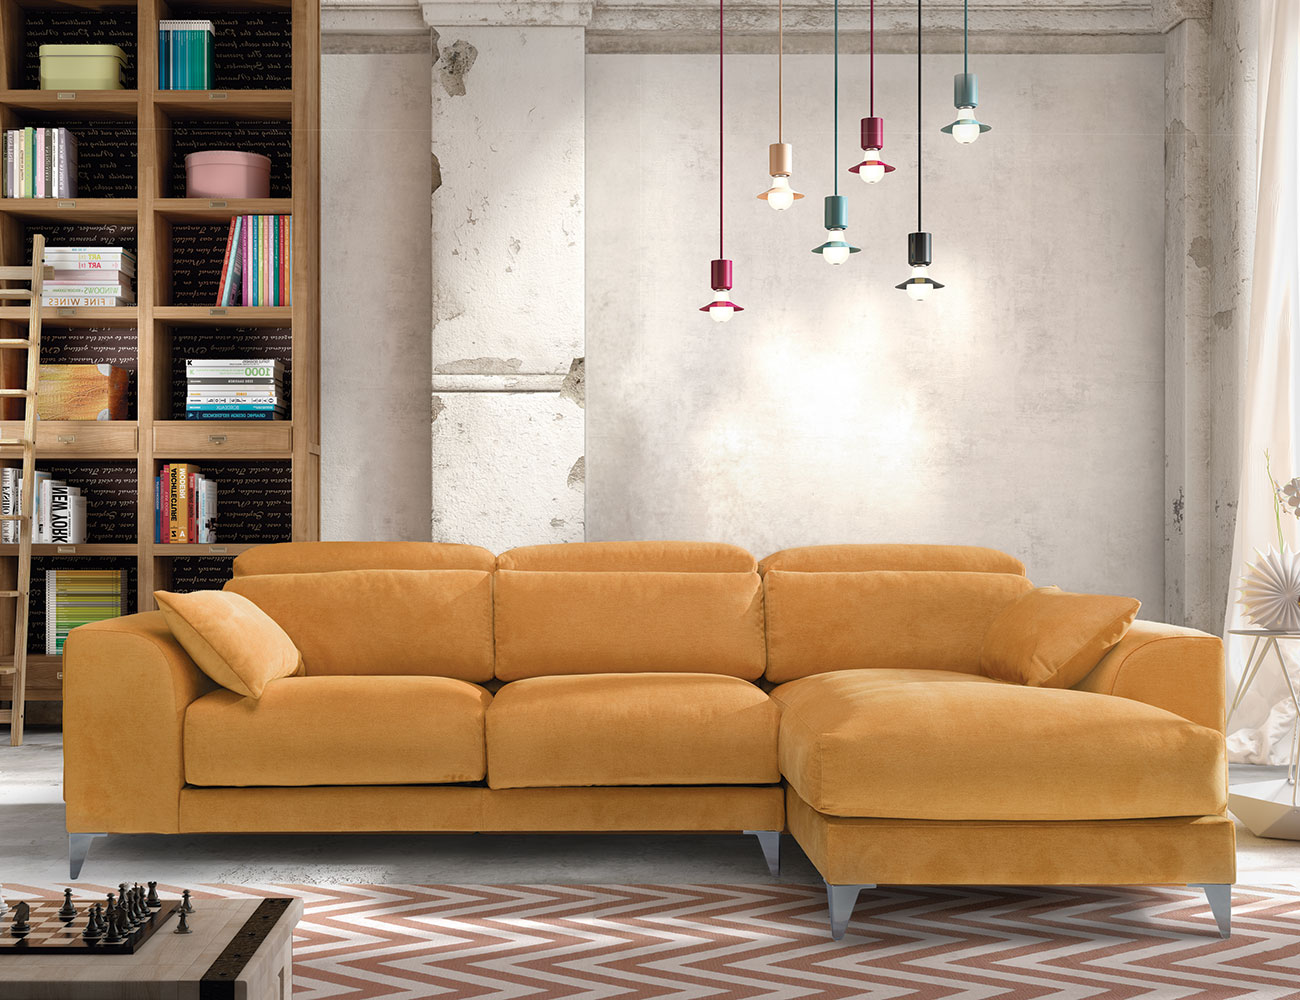 Sofa chaiselongue gran lujo decorativo patas altas amarillo 1